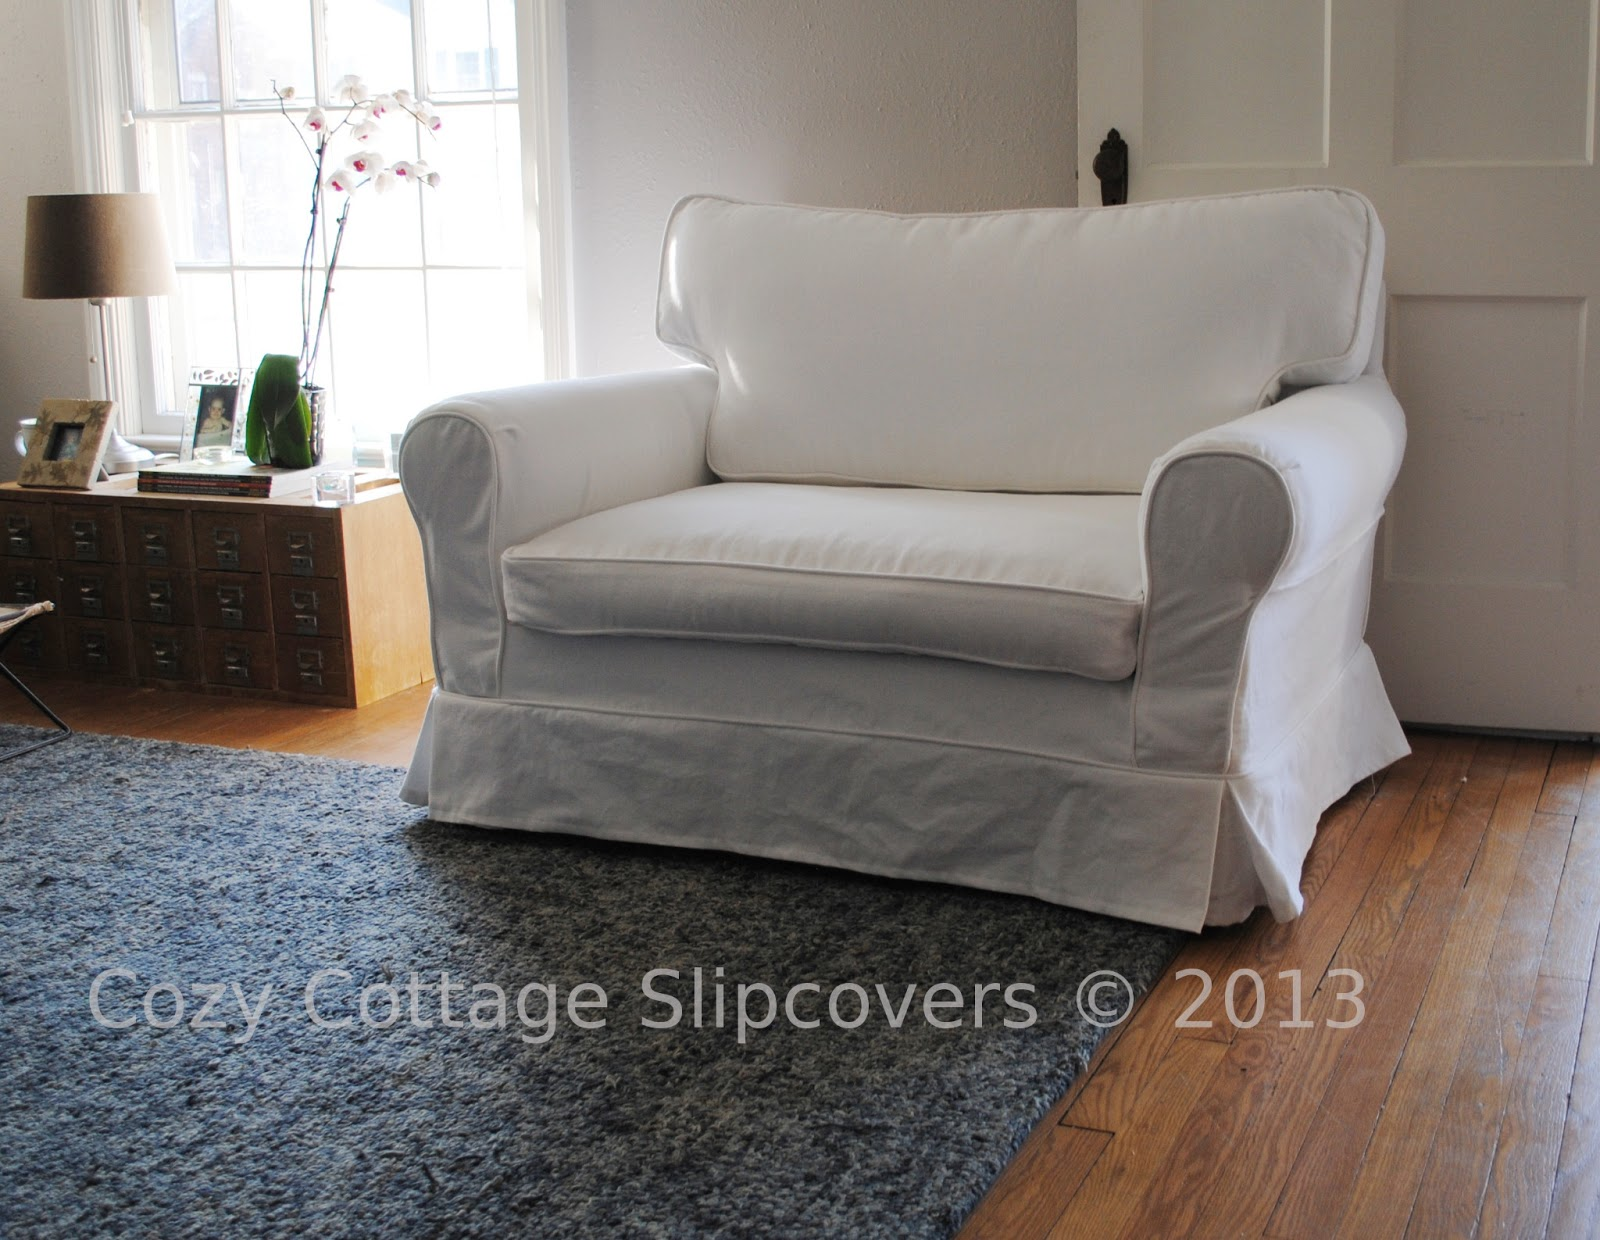 Cozy Cottage Slipcovers Brushed Canvas Chair and a half Slipcover